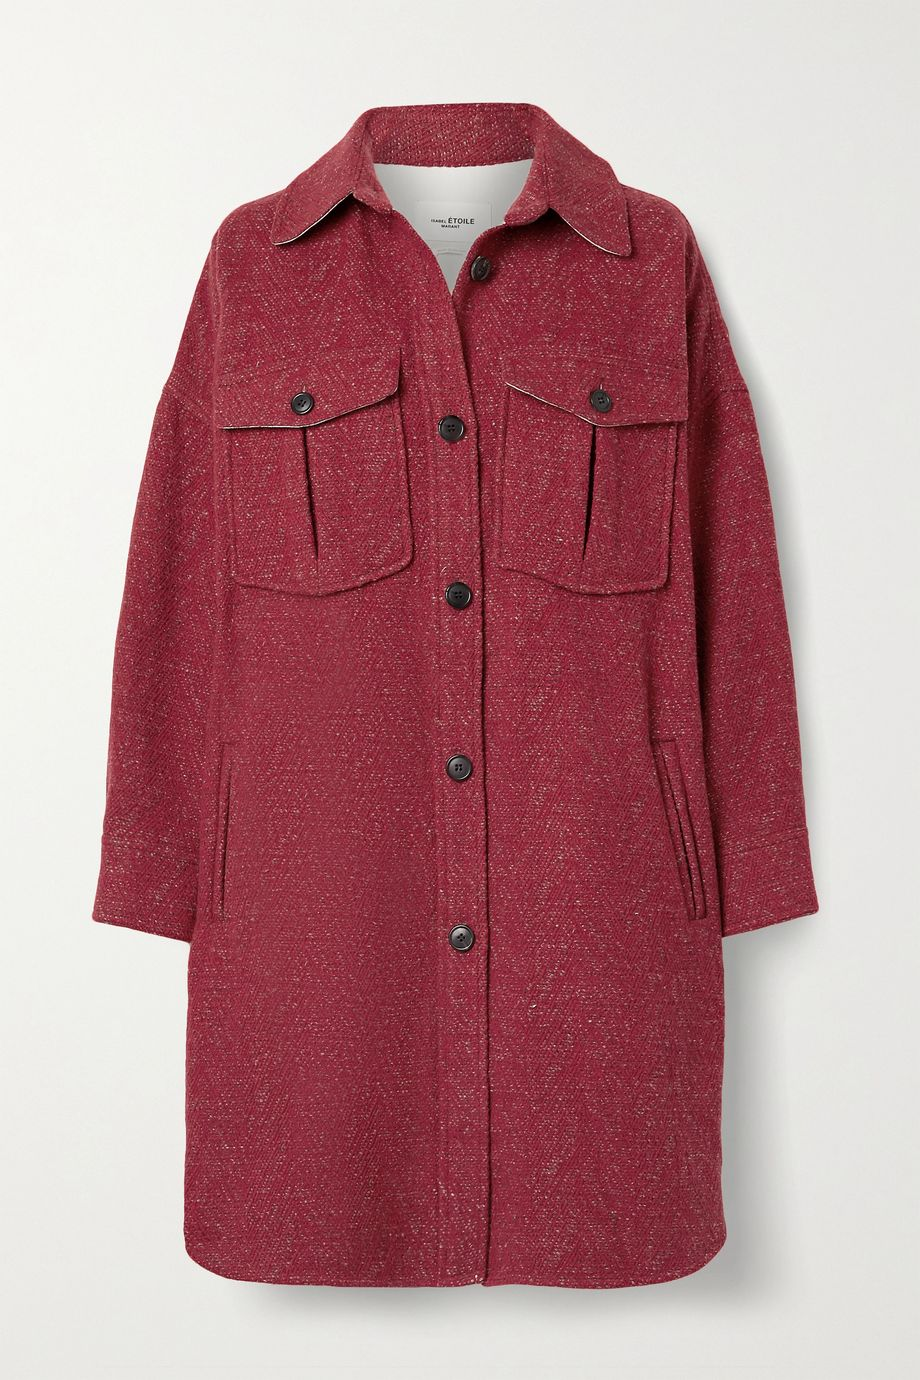 Isabel Marant Étoile Obira oversized herringbone wool-blend coat